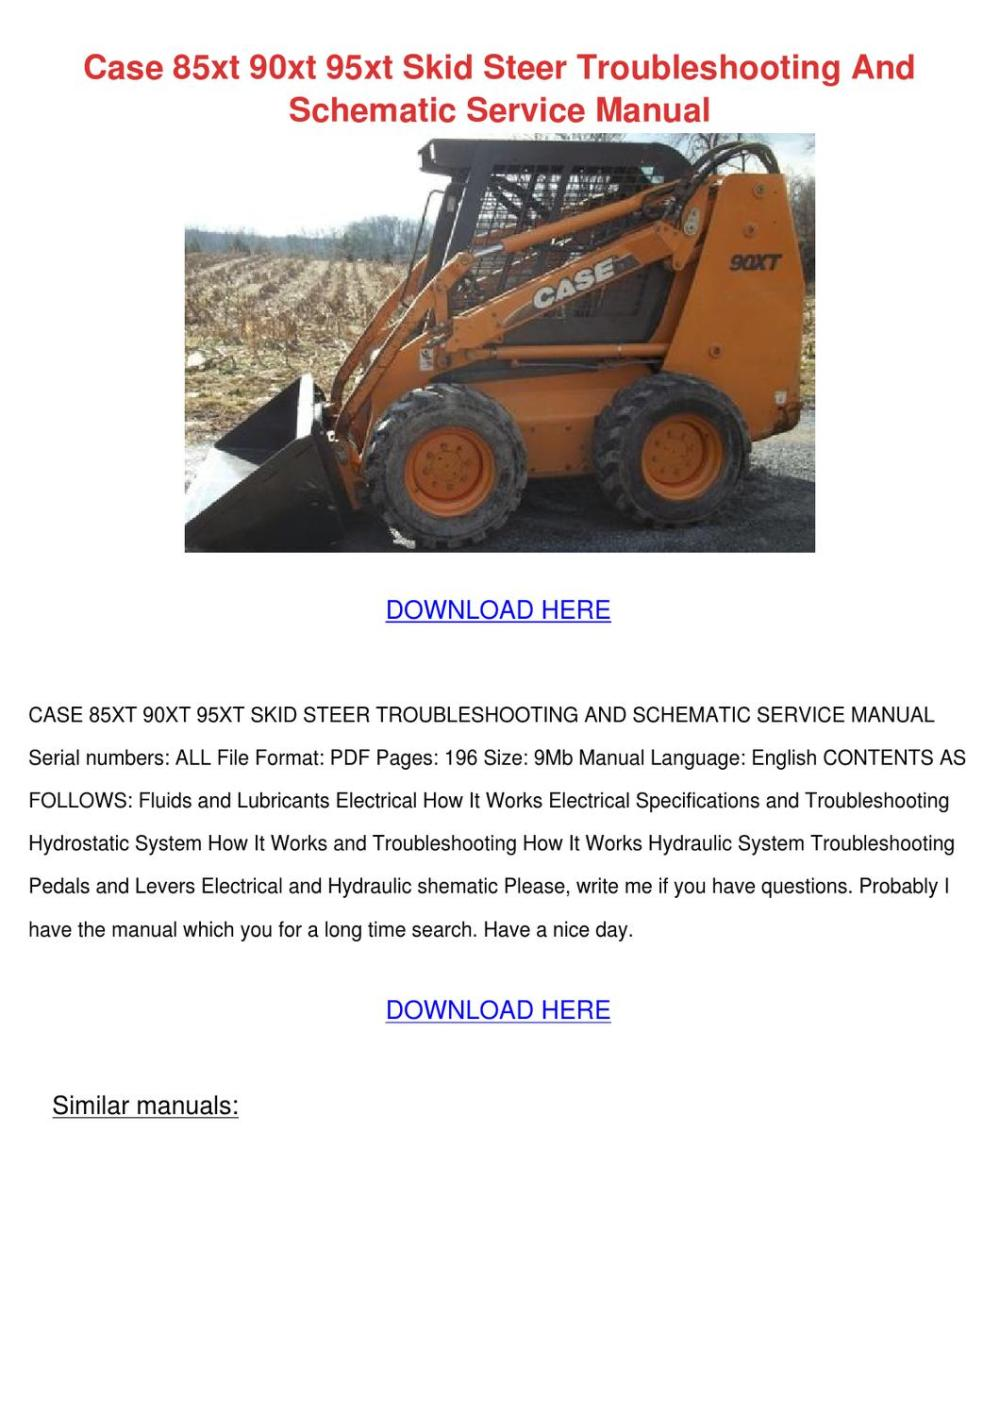 medium resolution of weight when loading hay on cold days with the right attachments a skid steer loader is a multi utilitarian machine this service manual contains pages of